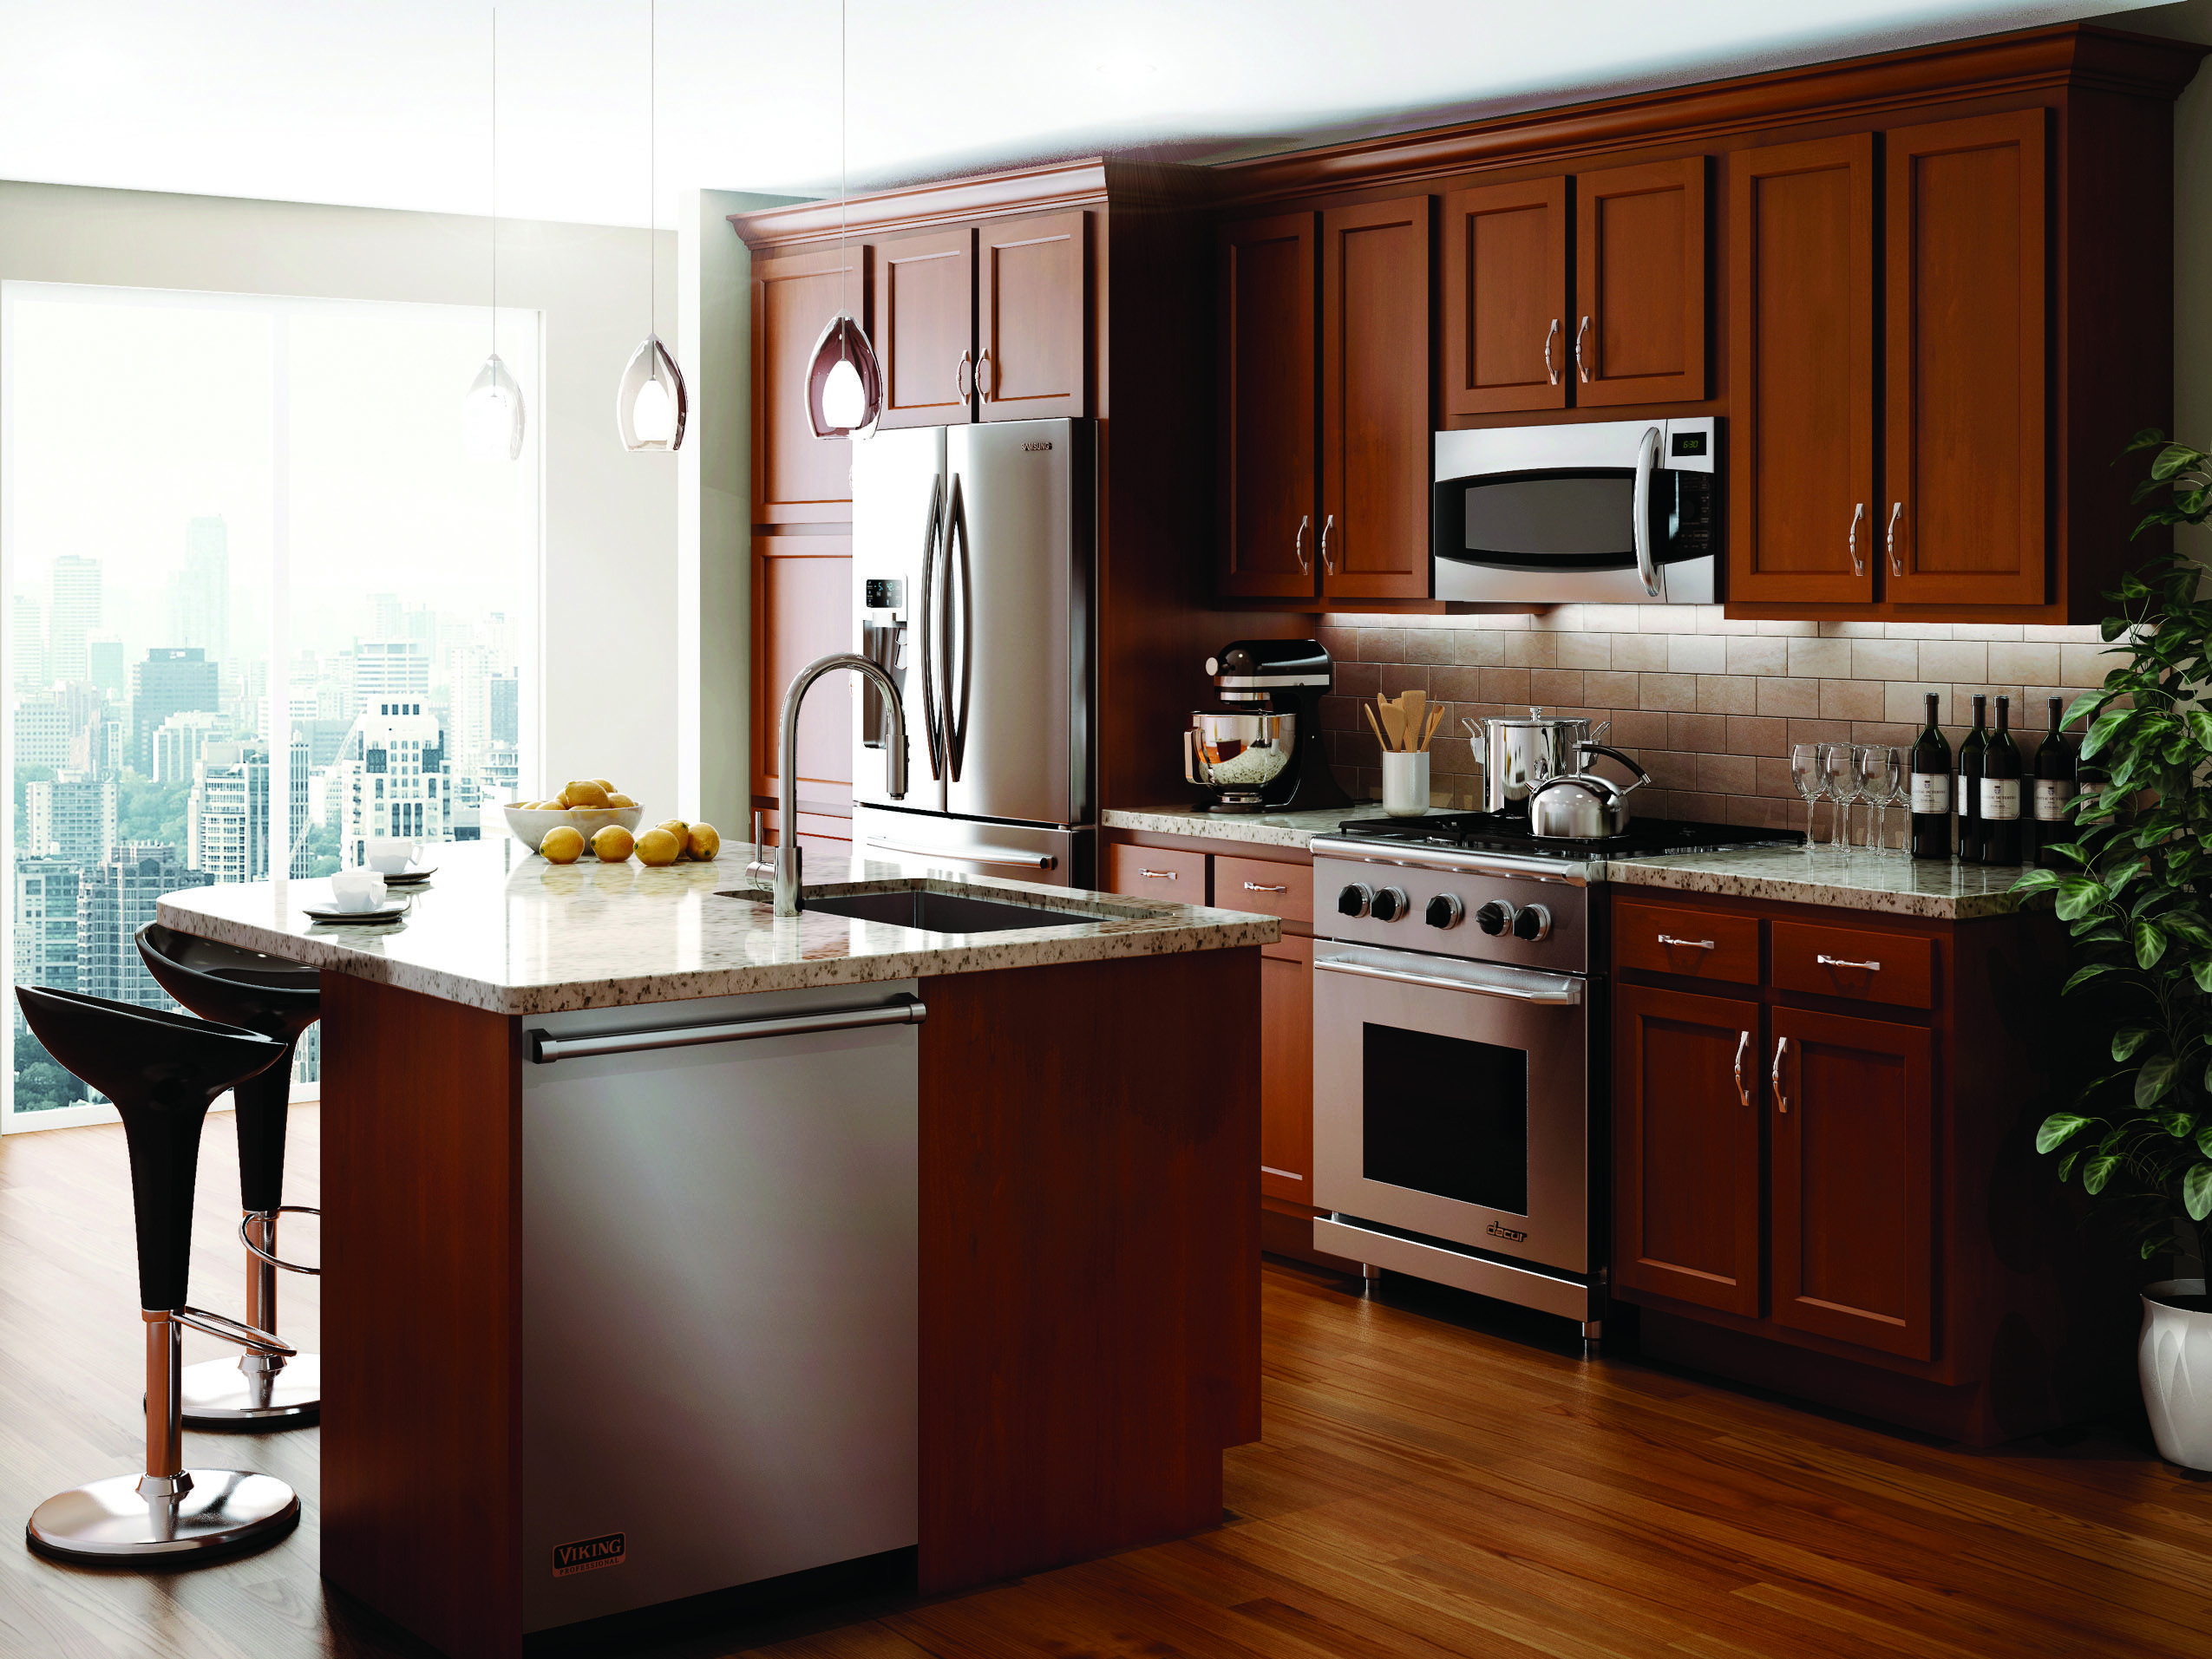 Glenwood Beech Kitchen Remodel Beech Kitchen Cabinets Home Depot Kitchen